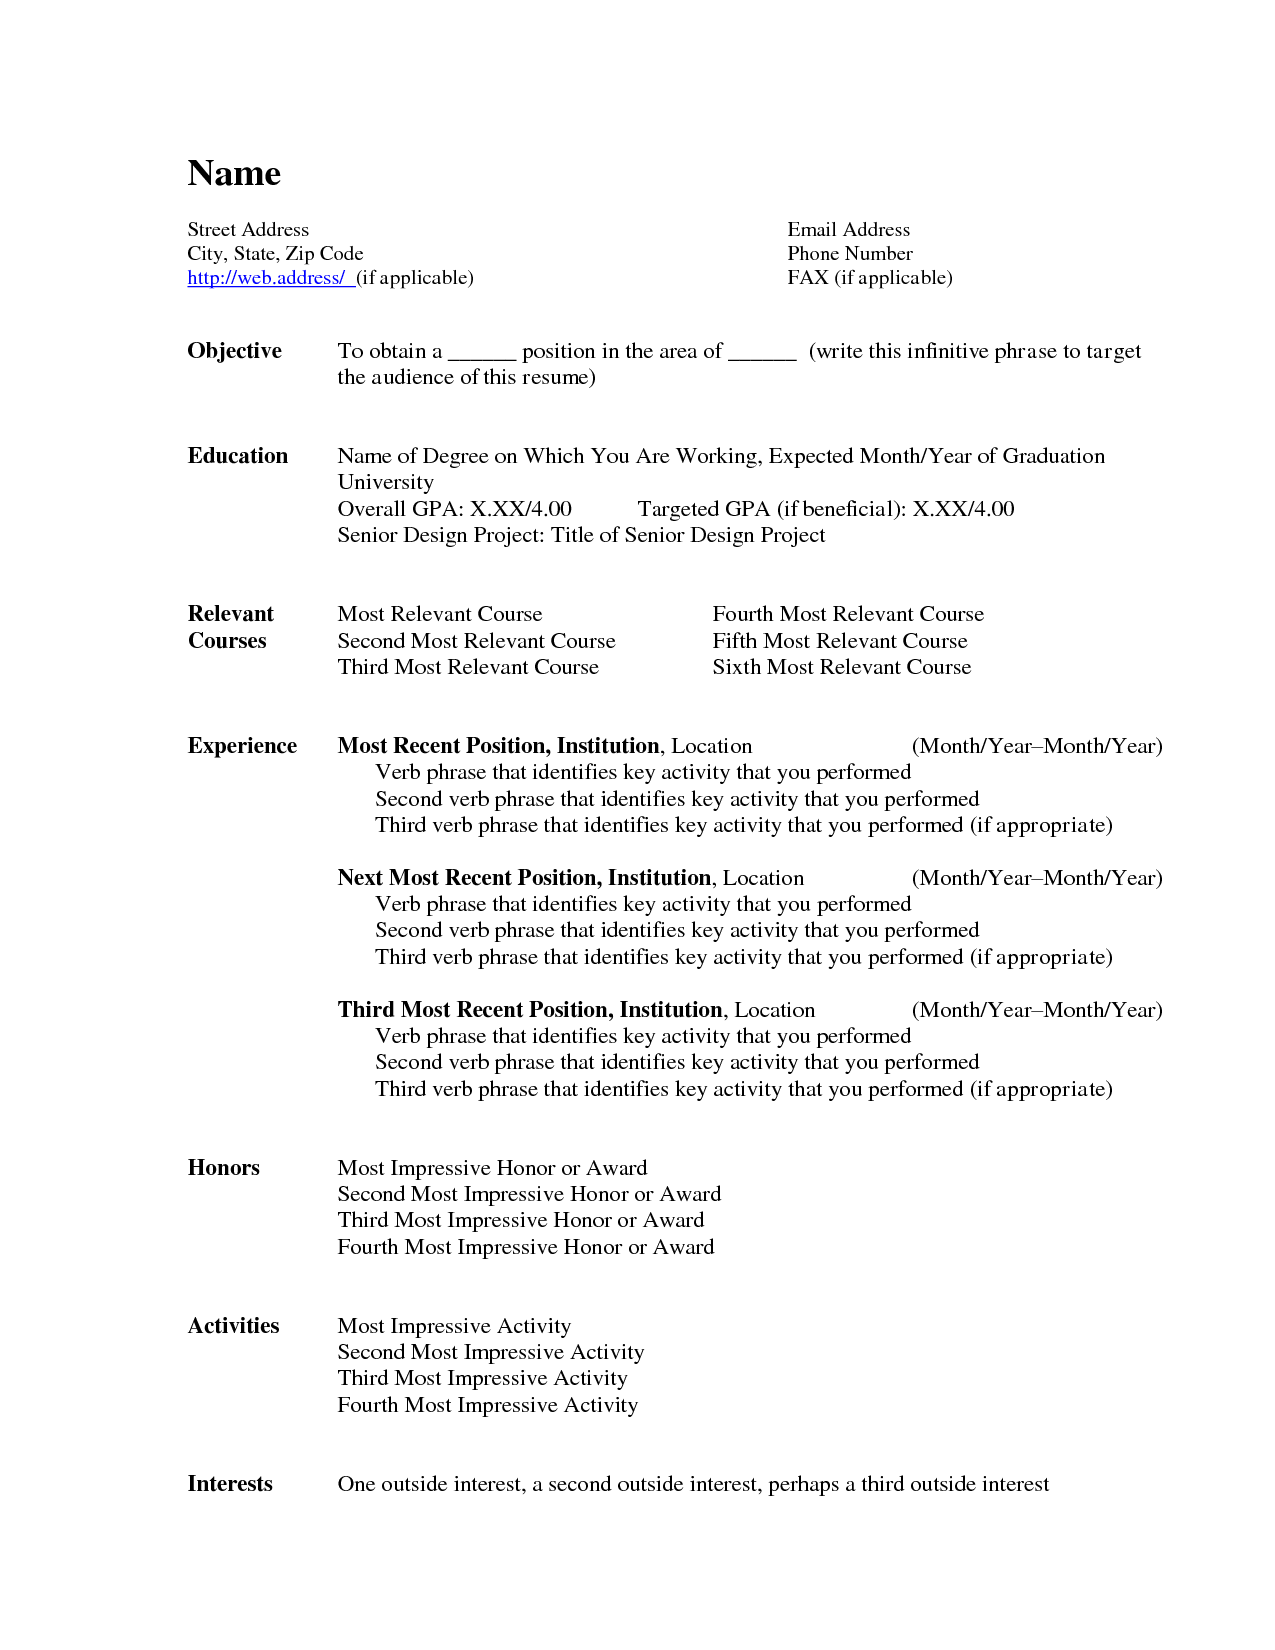 resume Resume Templates For Word microsoft word resume template builder http httpwww jobresume